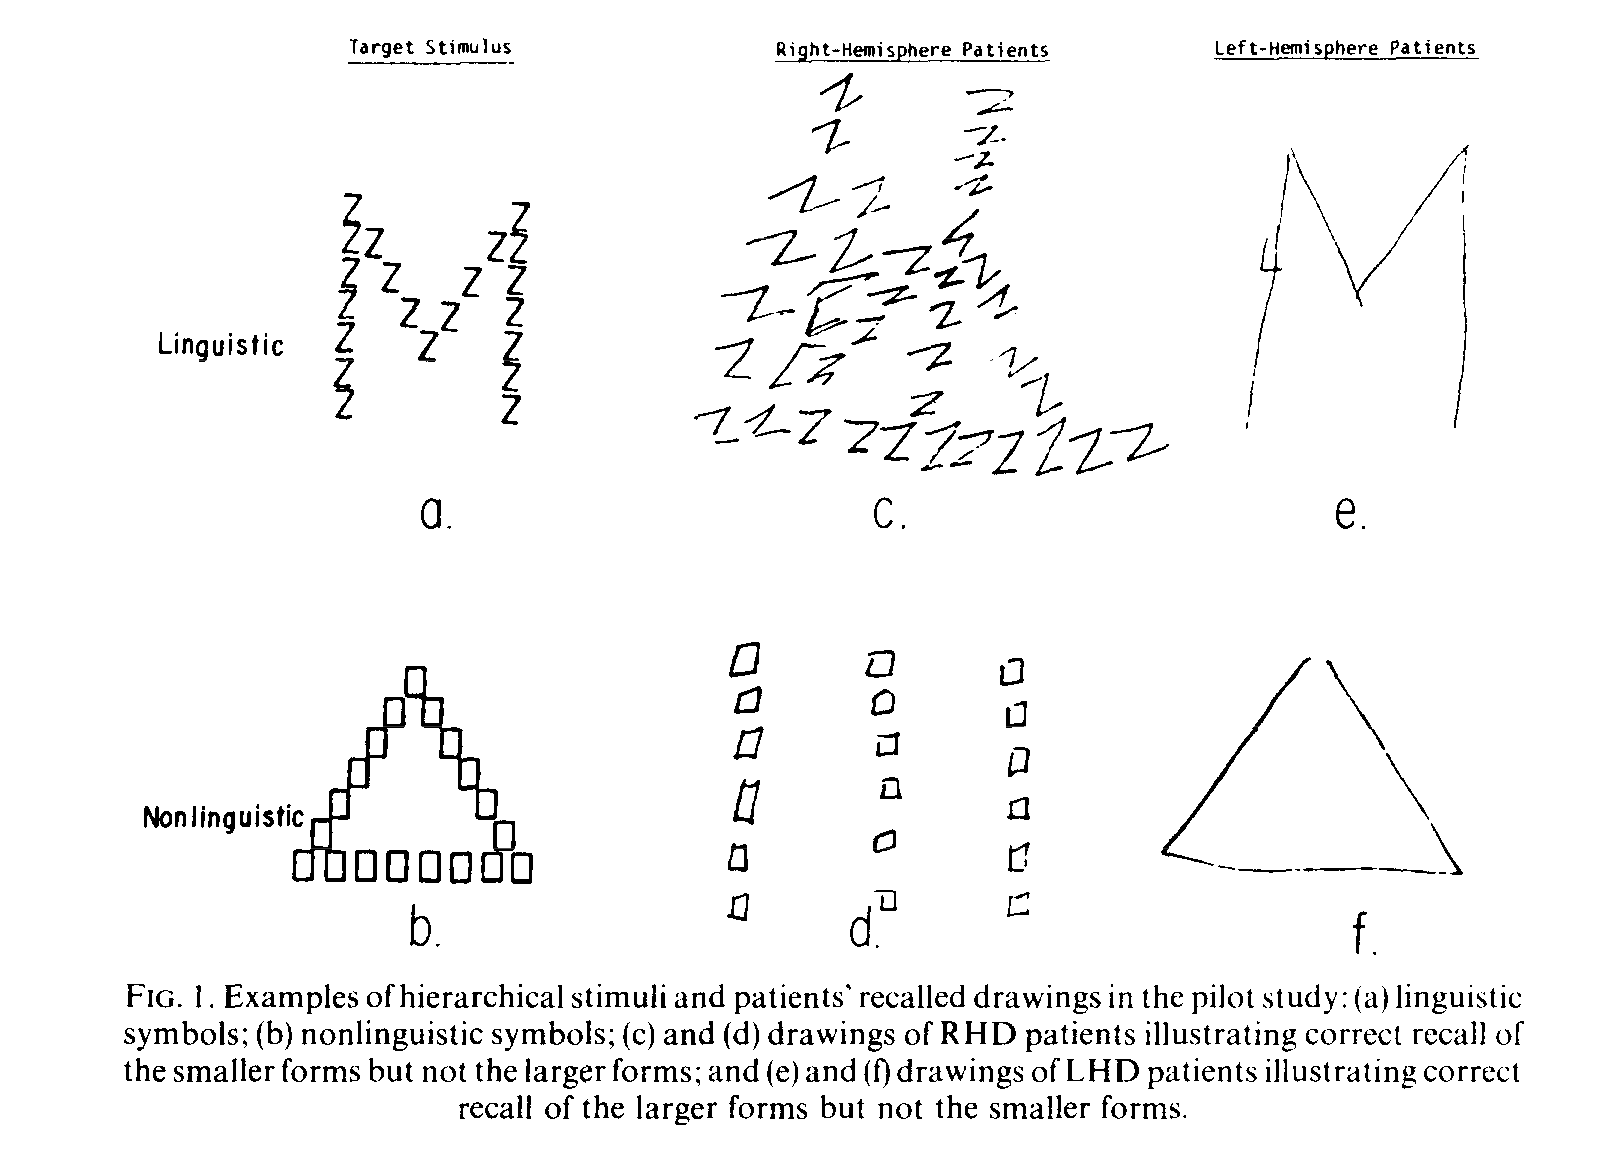 From: Delis DC, Robertson LC, Efron R (1986) Hemispheric specialization of memory for visual hierarchical stimuli. Neuropsychologia. 24(2):205-14.